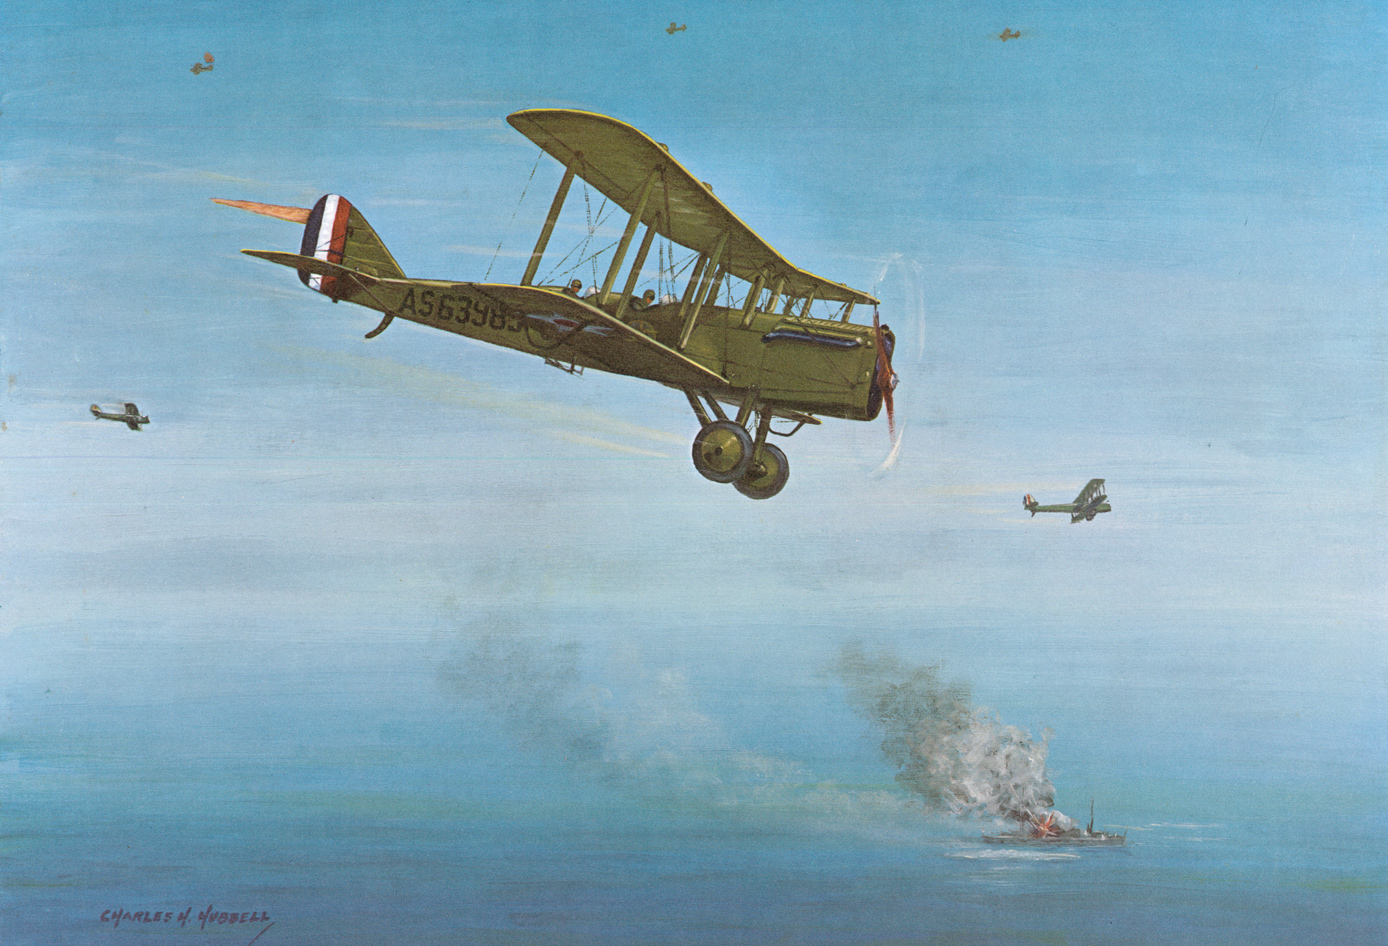 A Charles Hubbell painting of Billy Mitchell's famous moment sinking the German war prize battleship Ostfriesland in a demonstration of Strategic Air Power. (image via SAC Museum)